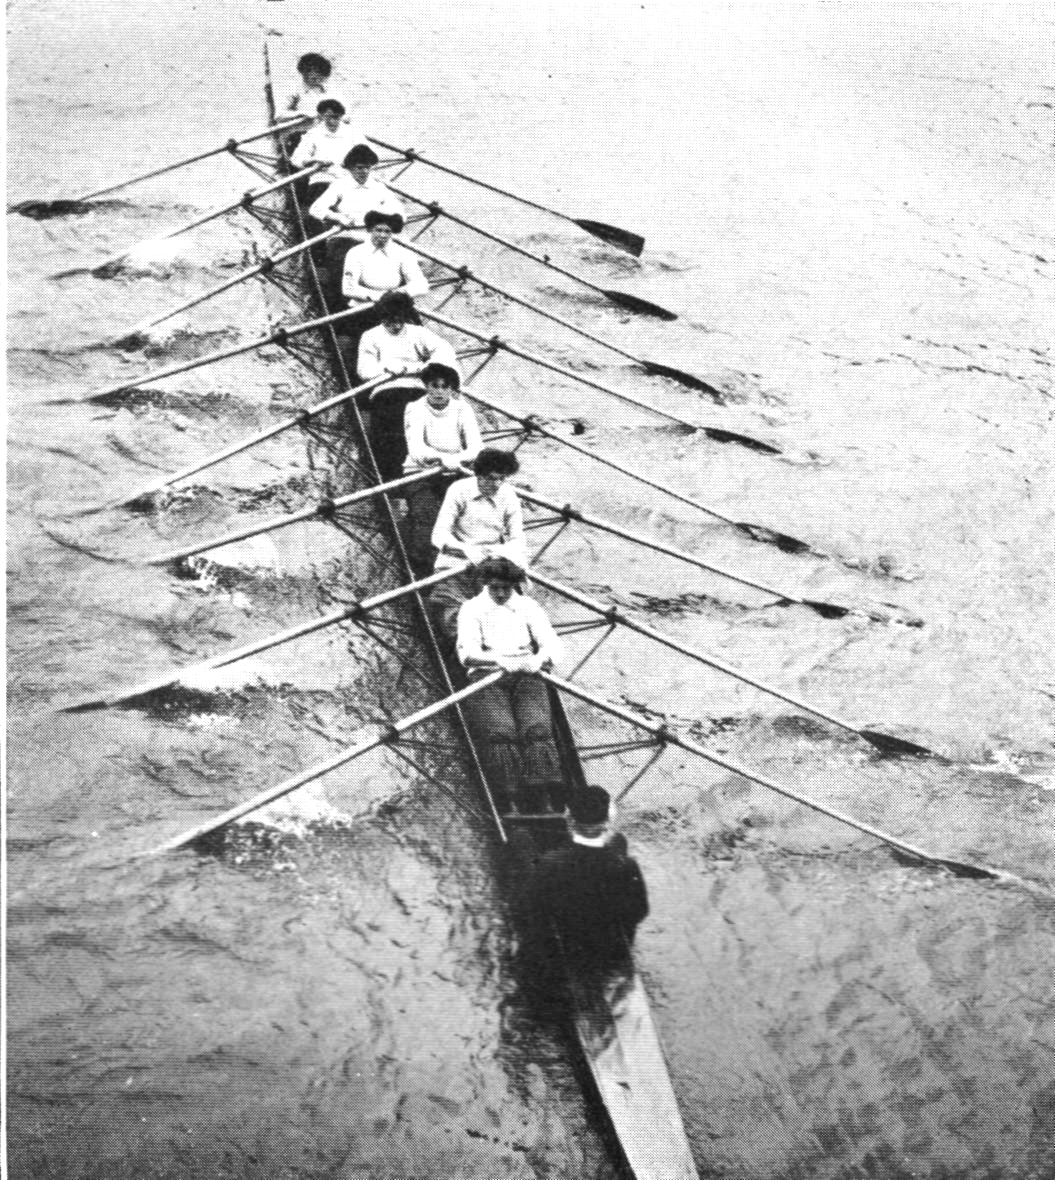 F. J. Furnivall coxing the girls of the Hammersmith Sculling Club in 1907